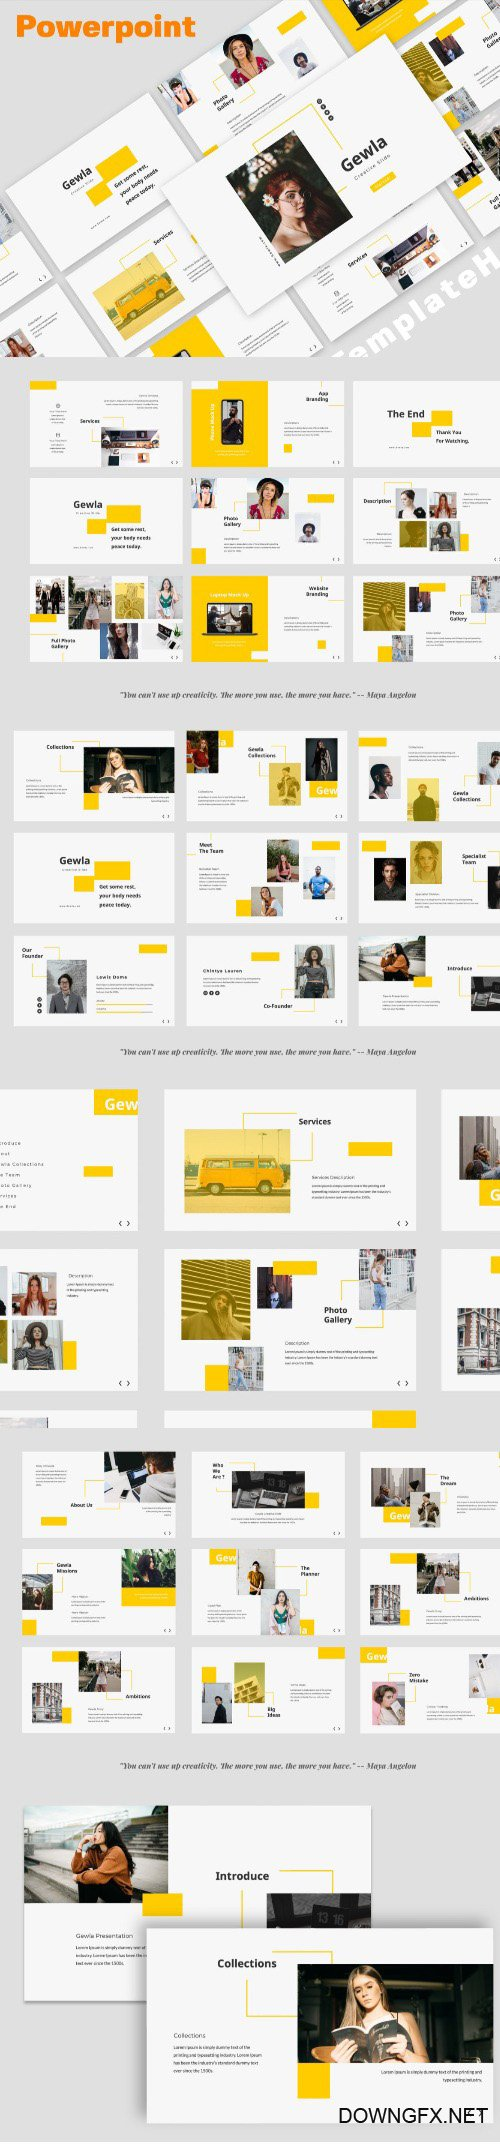 Gewla Creative Powerpoint, Keynote and Google Slides Templates